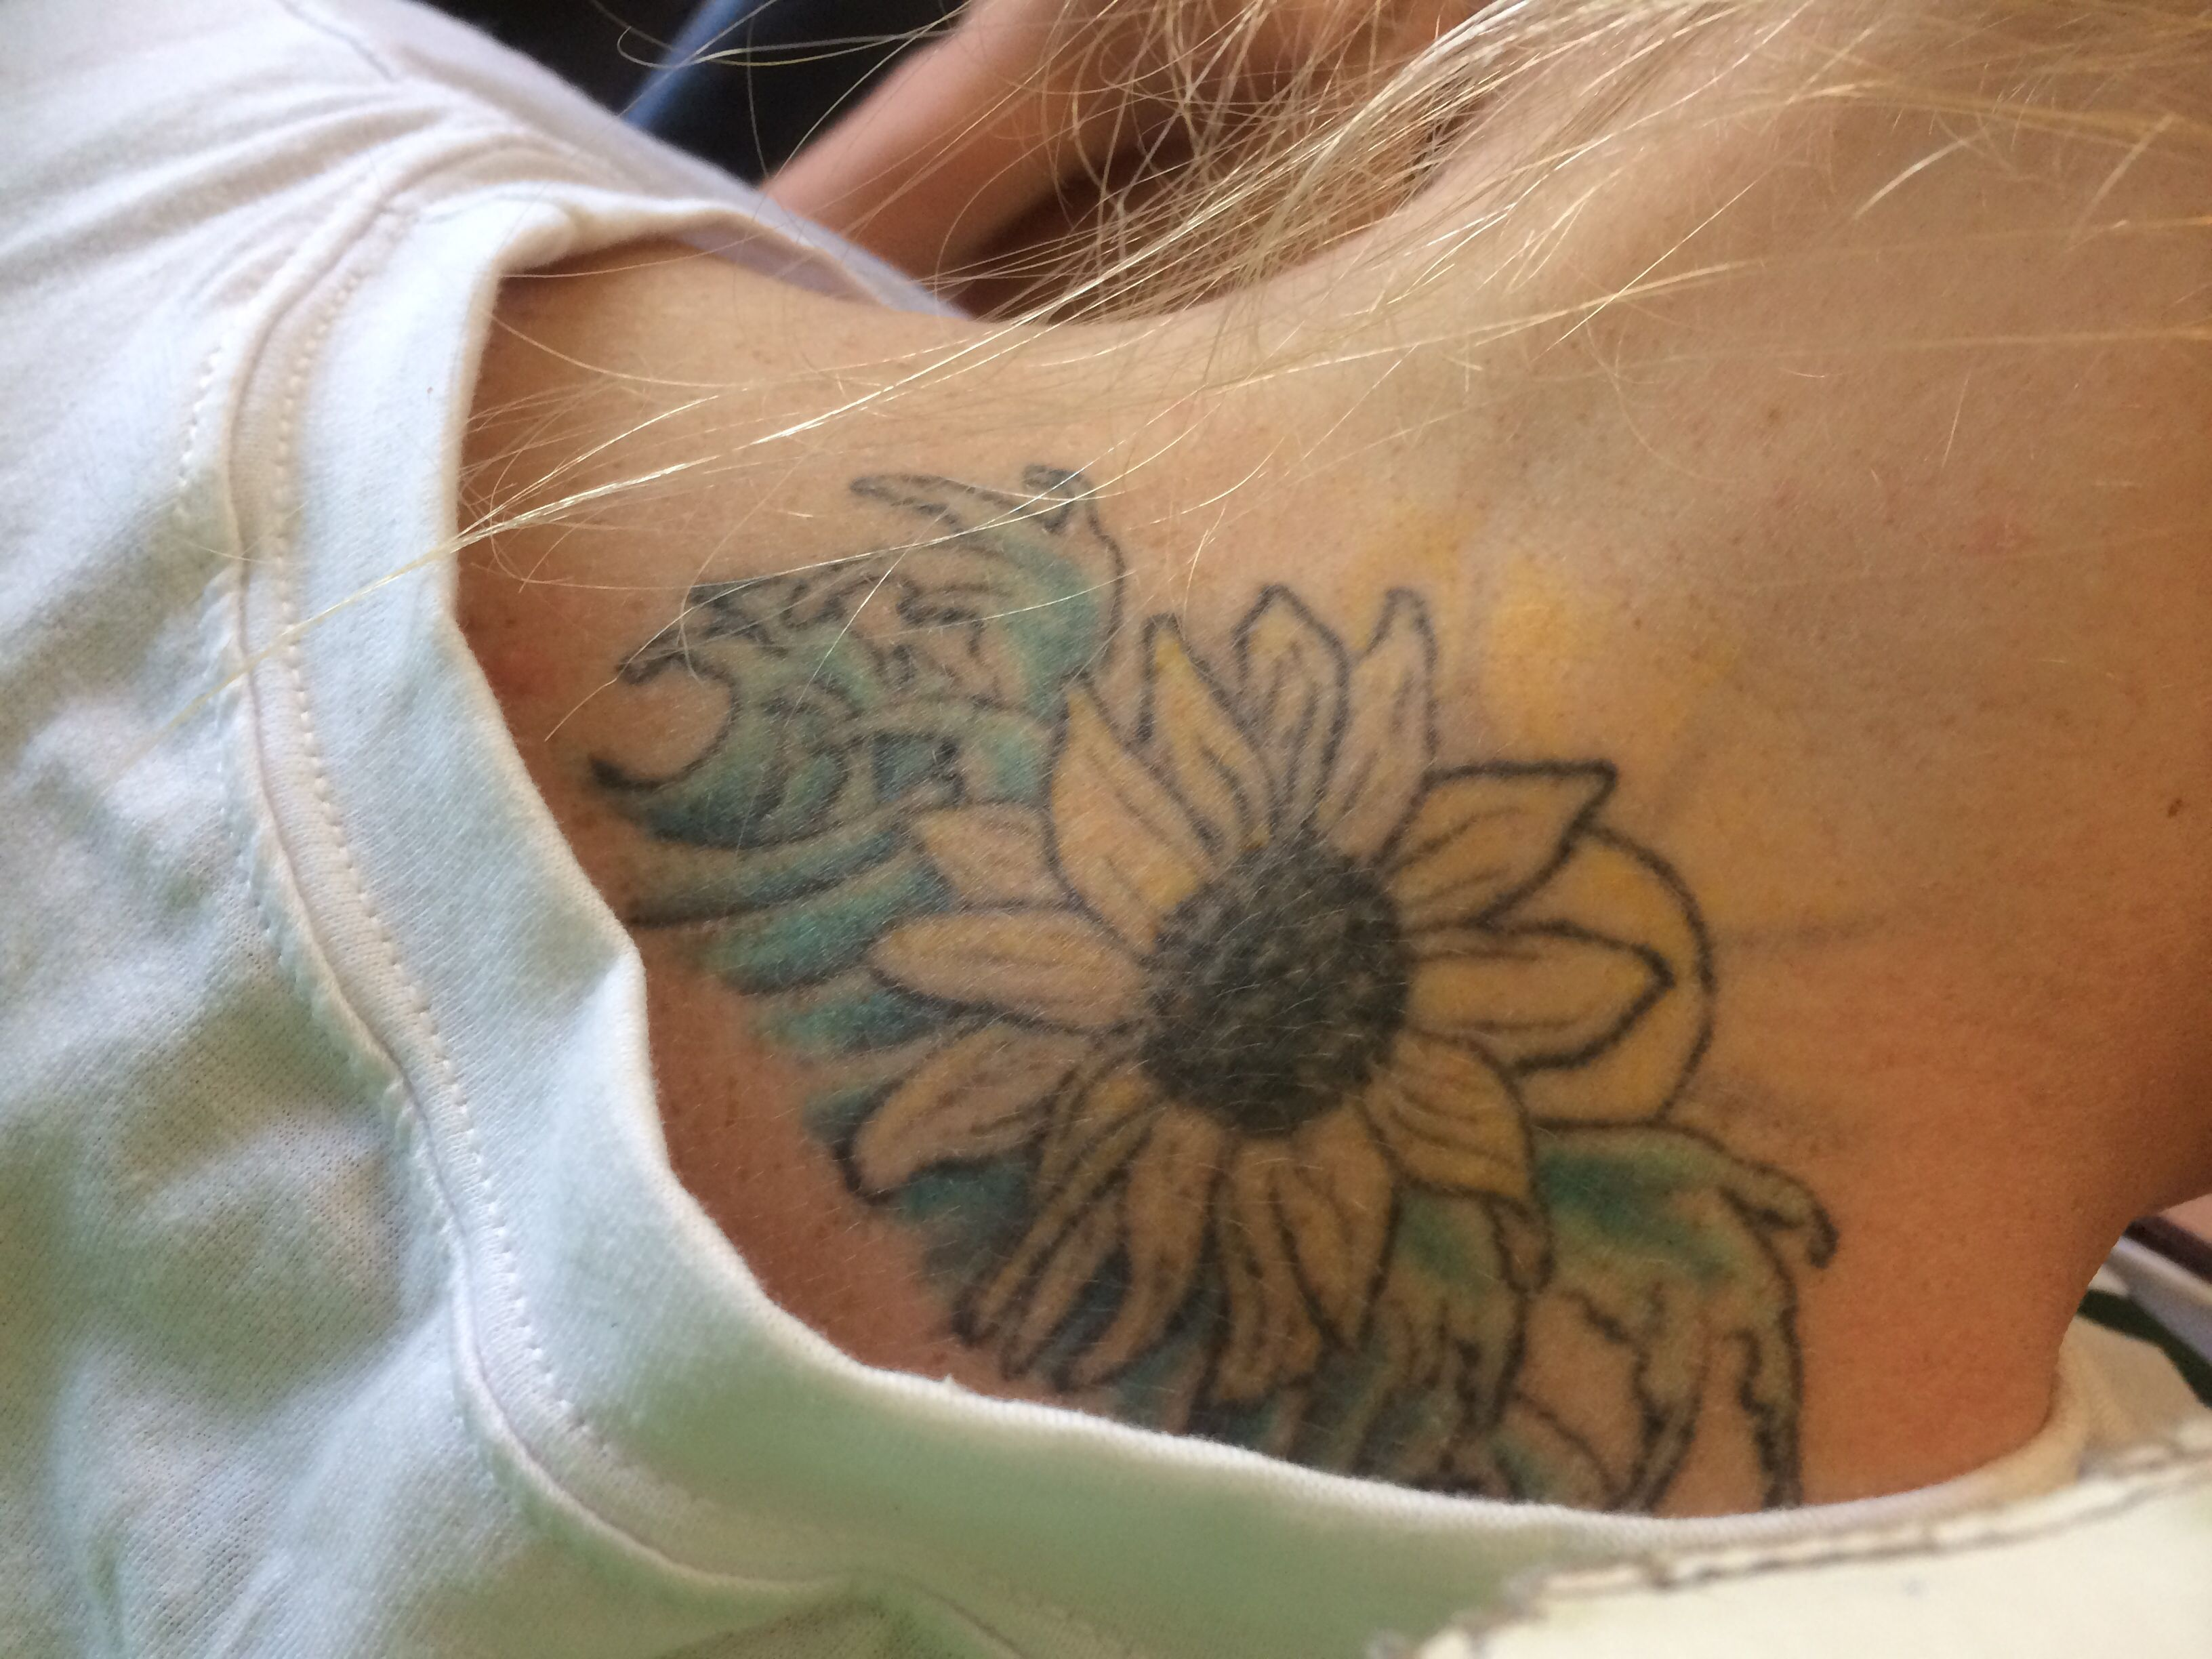 2009 This needs to be touched up! Sunflower 🌻 with waves🌊🌊 ...